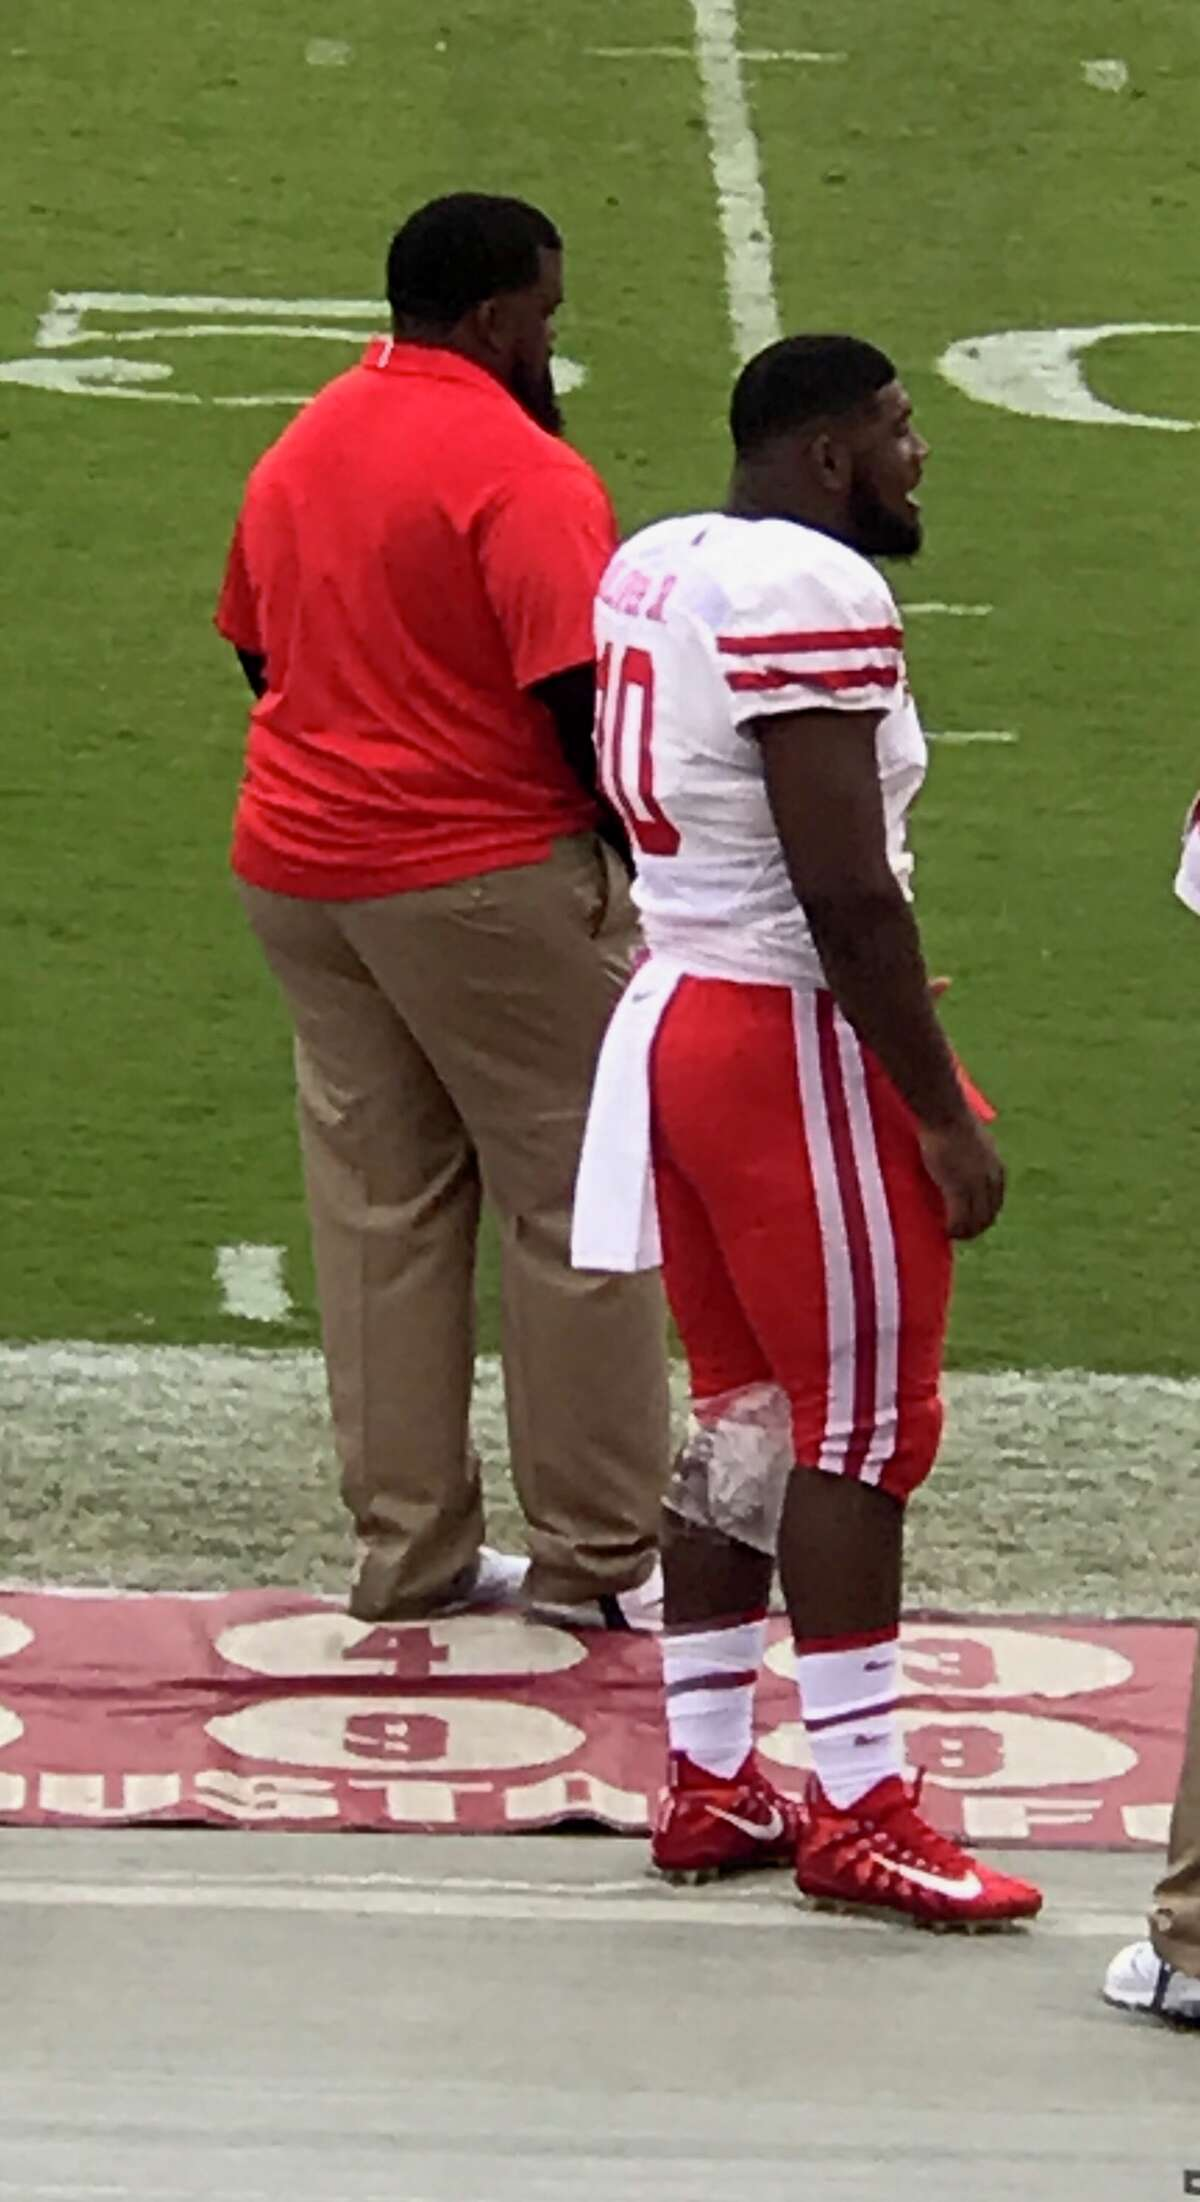 University of Houston defensive tackle Ed Oliver stands on the sideline with his left knee wrapped during Saturday's contest against Temple.